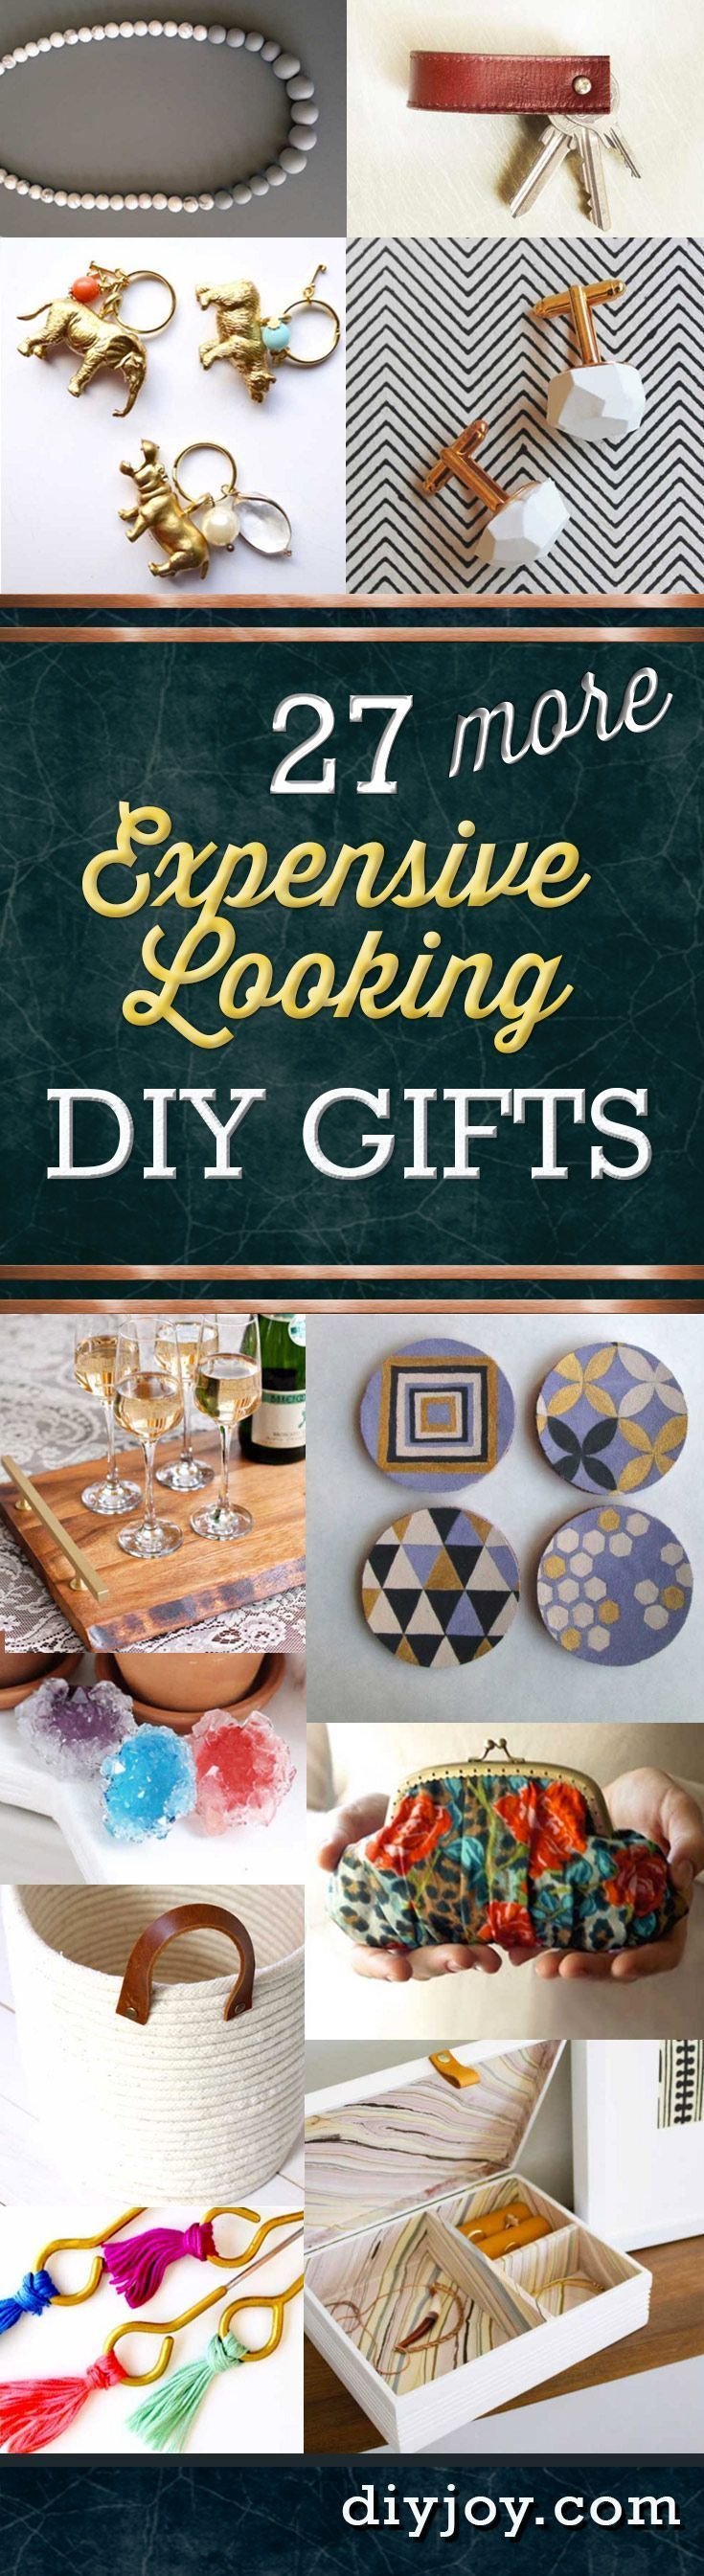 27 Expensive Looking Inexpensive Diy Gifts Diy Crafts